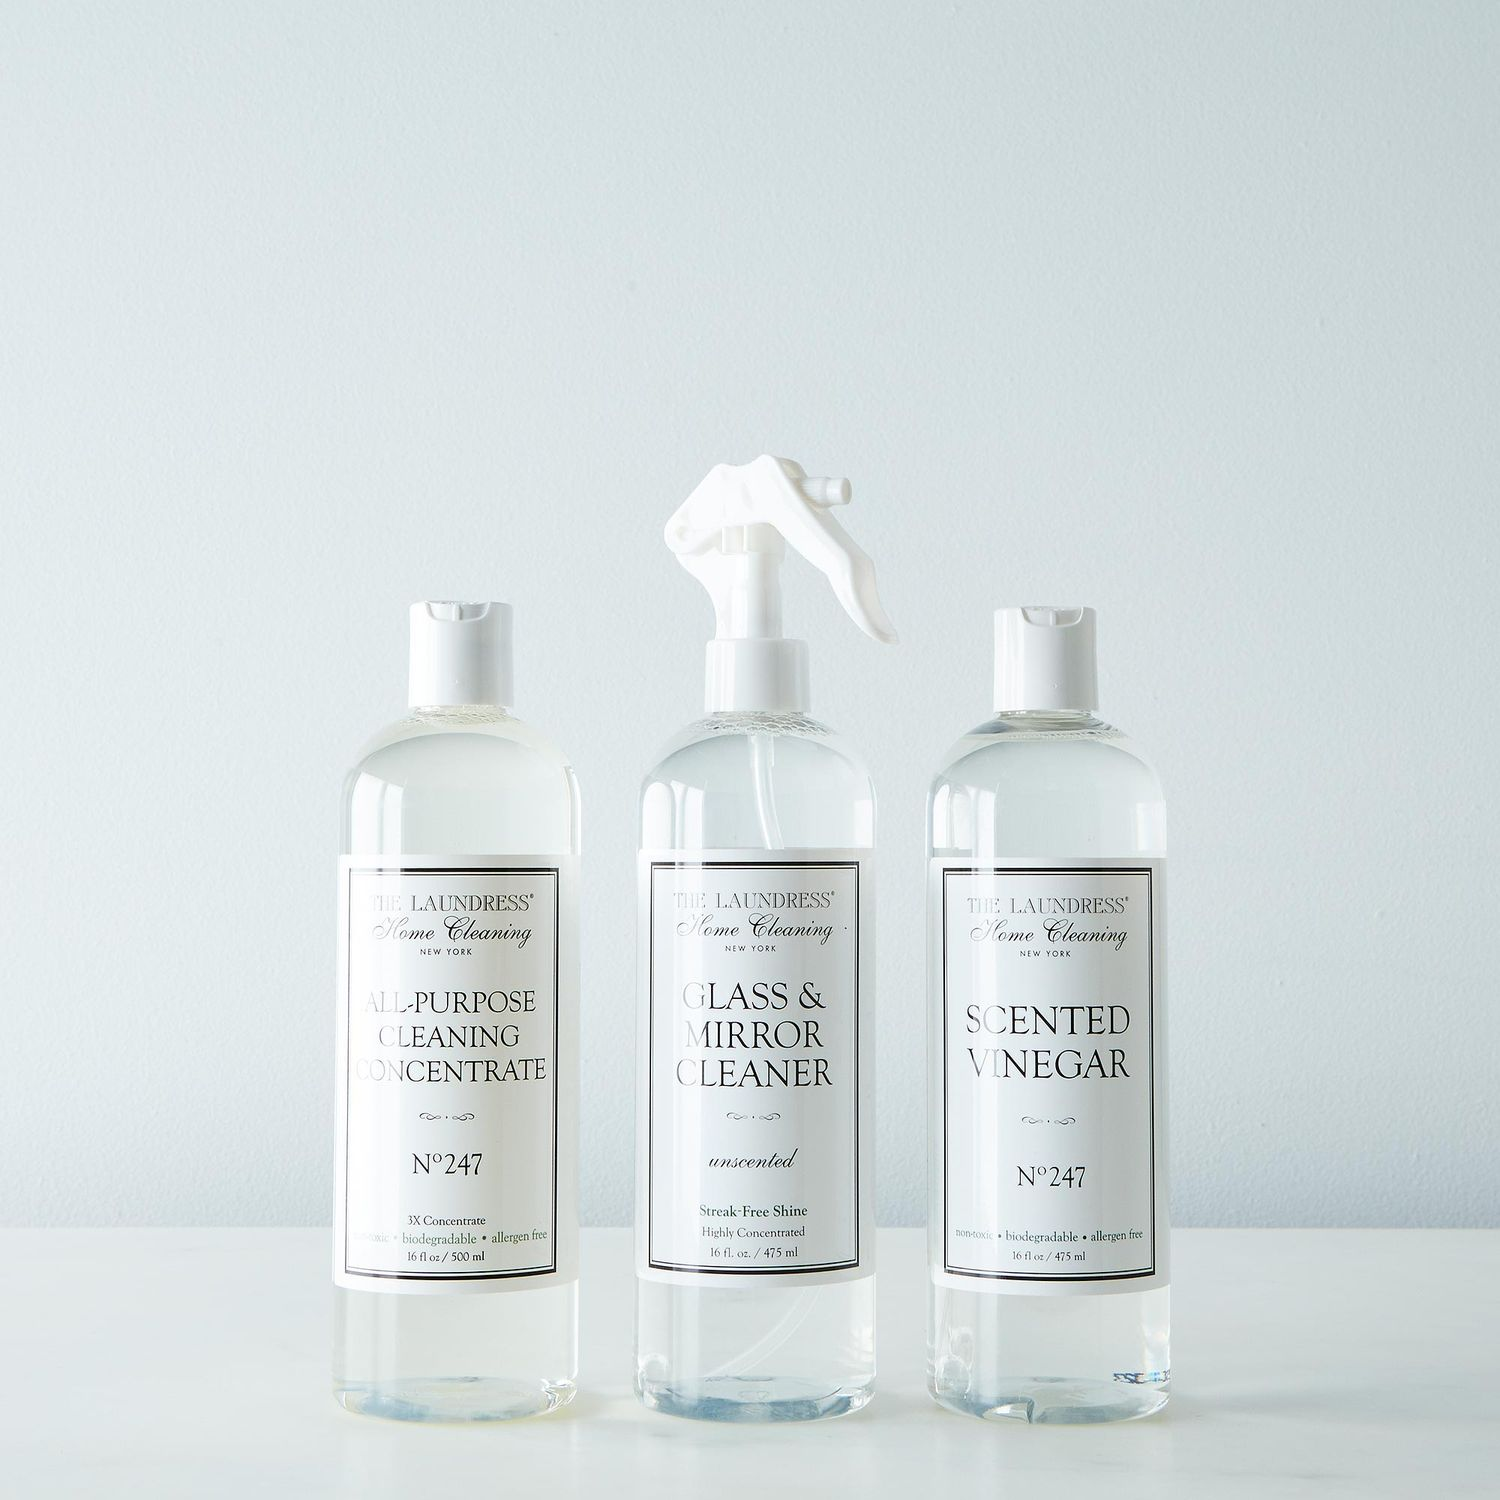 Vinegar As Degreaser: All Natural Scented Vinegar, All-Purpose Cleaner And Glass